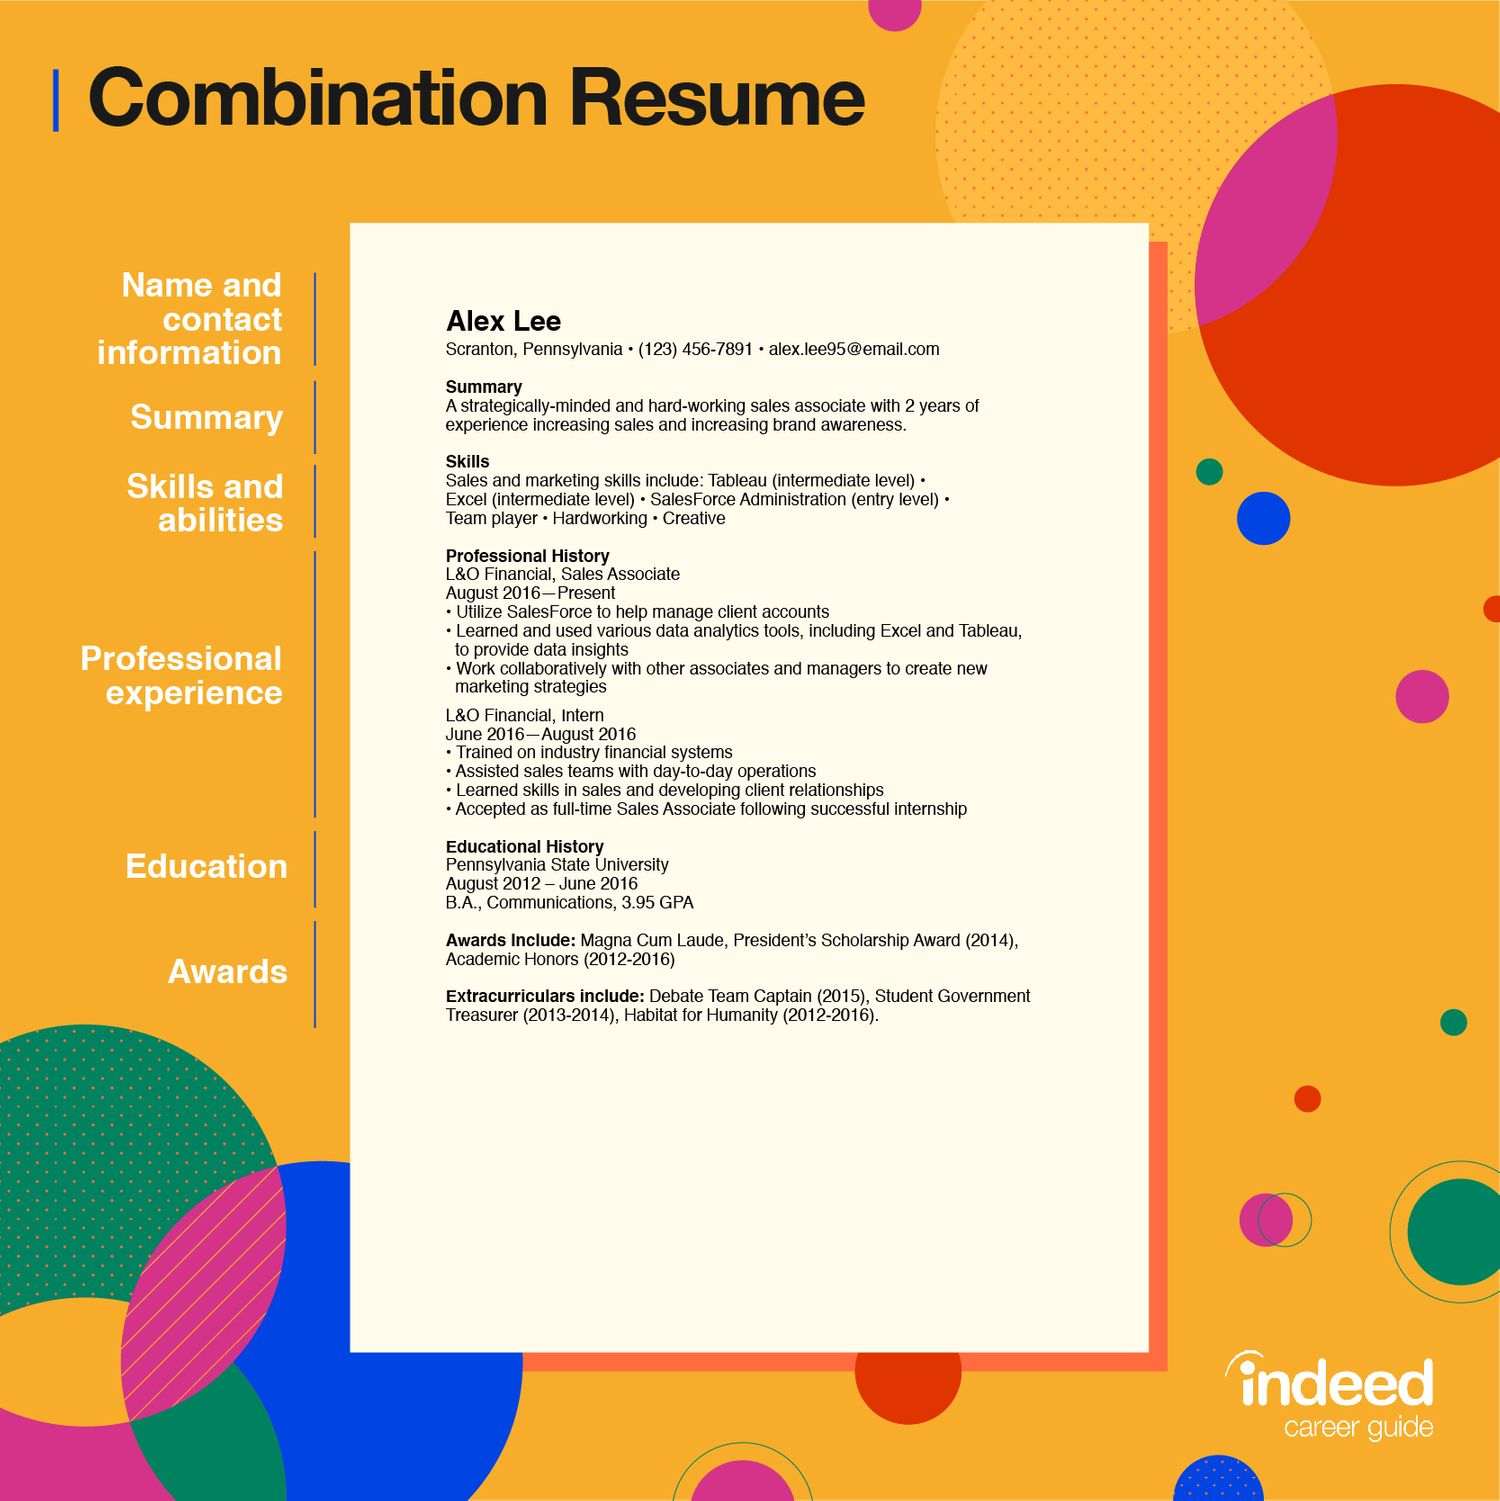 resume format guide tips and examples of the best formats indeed type in templates Resume Type In Resume Templates